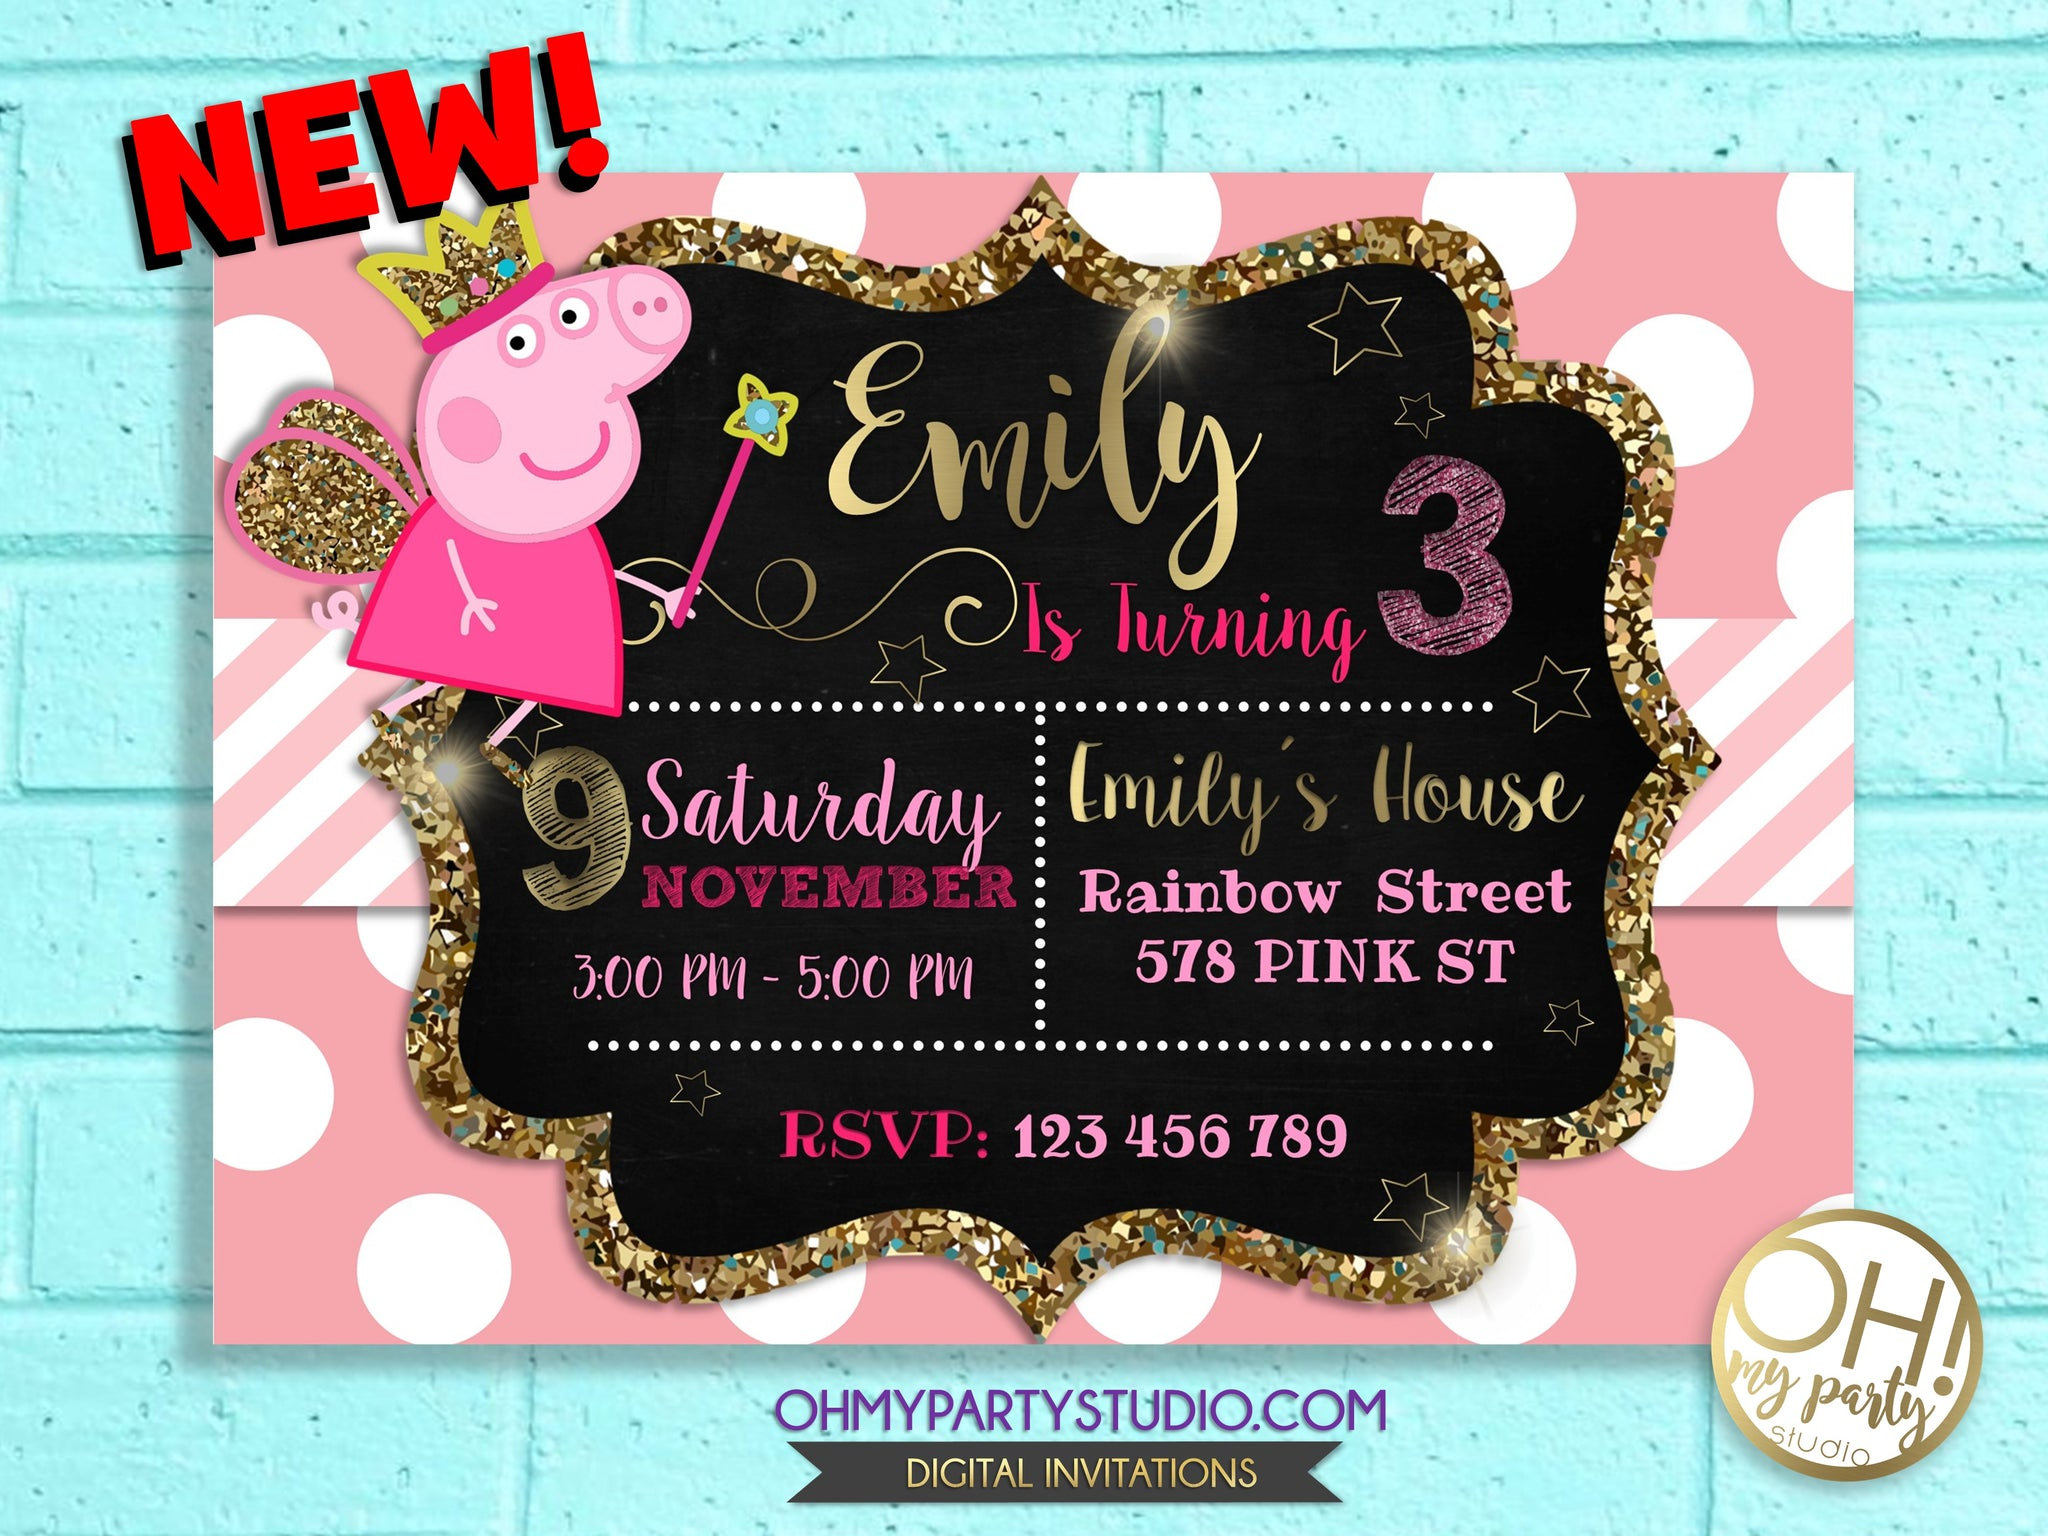 PEPPA PIG BIRTHDAY, PEPPA PIG PARTY, PEPPA PIG INVITATION, PEPPA PIG PRINTABLES, PEPPA PIG INVITATION DIGITAL, PEPPA PIG INVITATIONS, PEPPA PIG POOL PARTY, PEPPA PIG PARTY IDEAS, PEPPA PIG PARTY THEME, PEPPA PIG BIRTHDAY, PEPPA PIG PARTY, PEPPA PIG INVITATION, PEPPA PIG PRINTABLES, PEPPA PIG INVITATION DIGITAL, PEPPA PIG INVITATIONS, PEPPA PIG, PEPPA PIG PARTY IDEAS, PEPPA PIG PARTY DECORATIONS, PEPPA PIG INVITATIONS, PEPPA PIG DIGITAL INVITATION, PEPPA PIG PARTY SUPPLIES